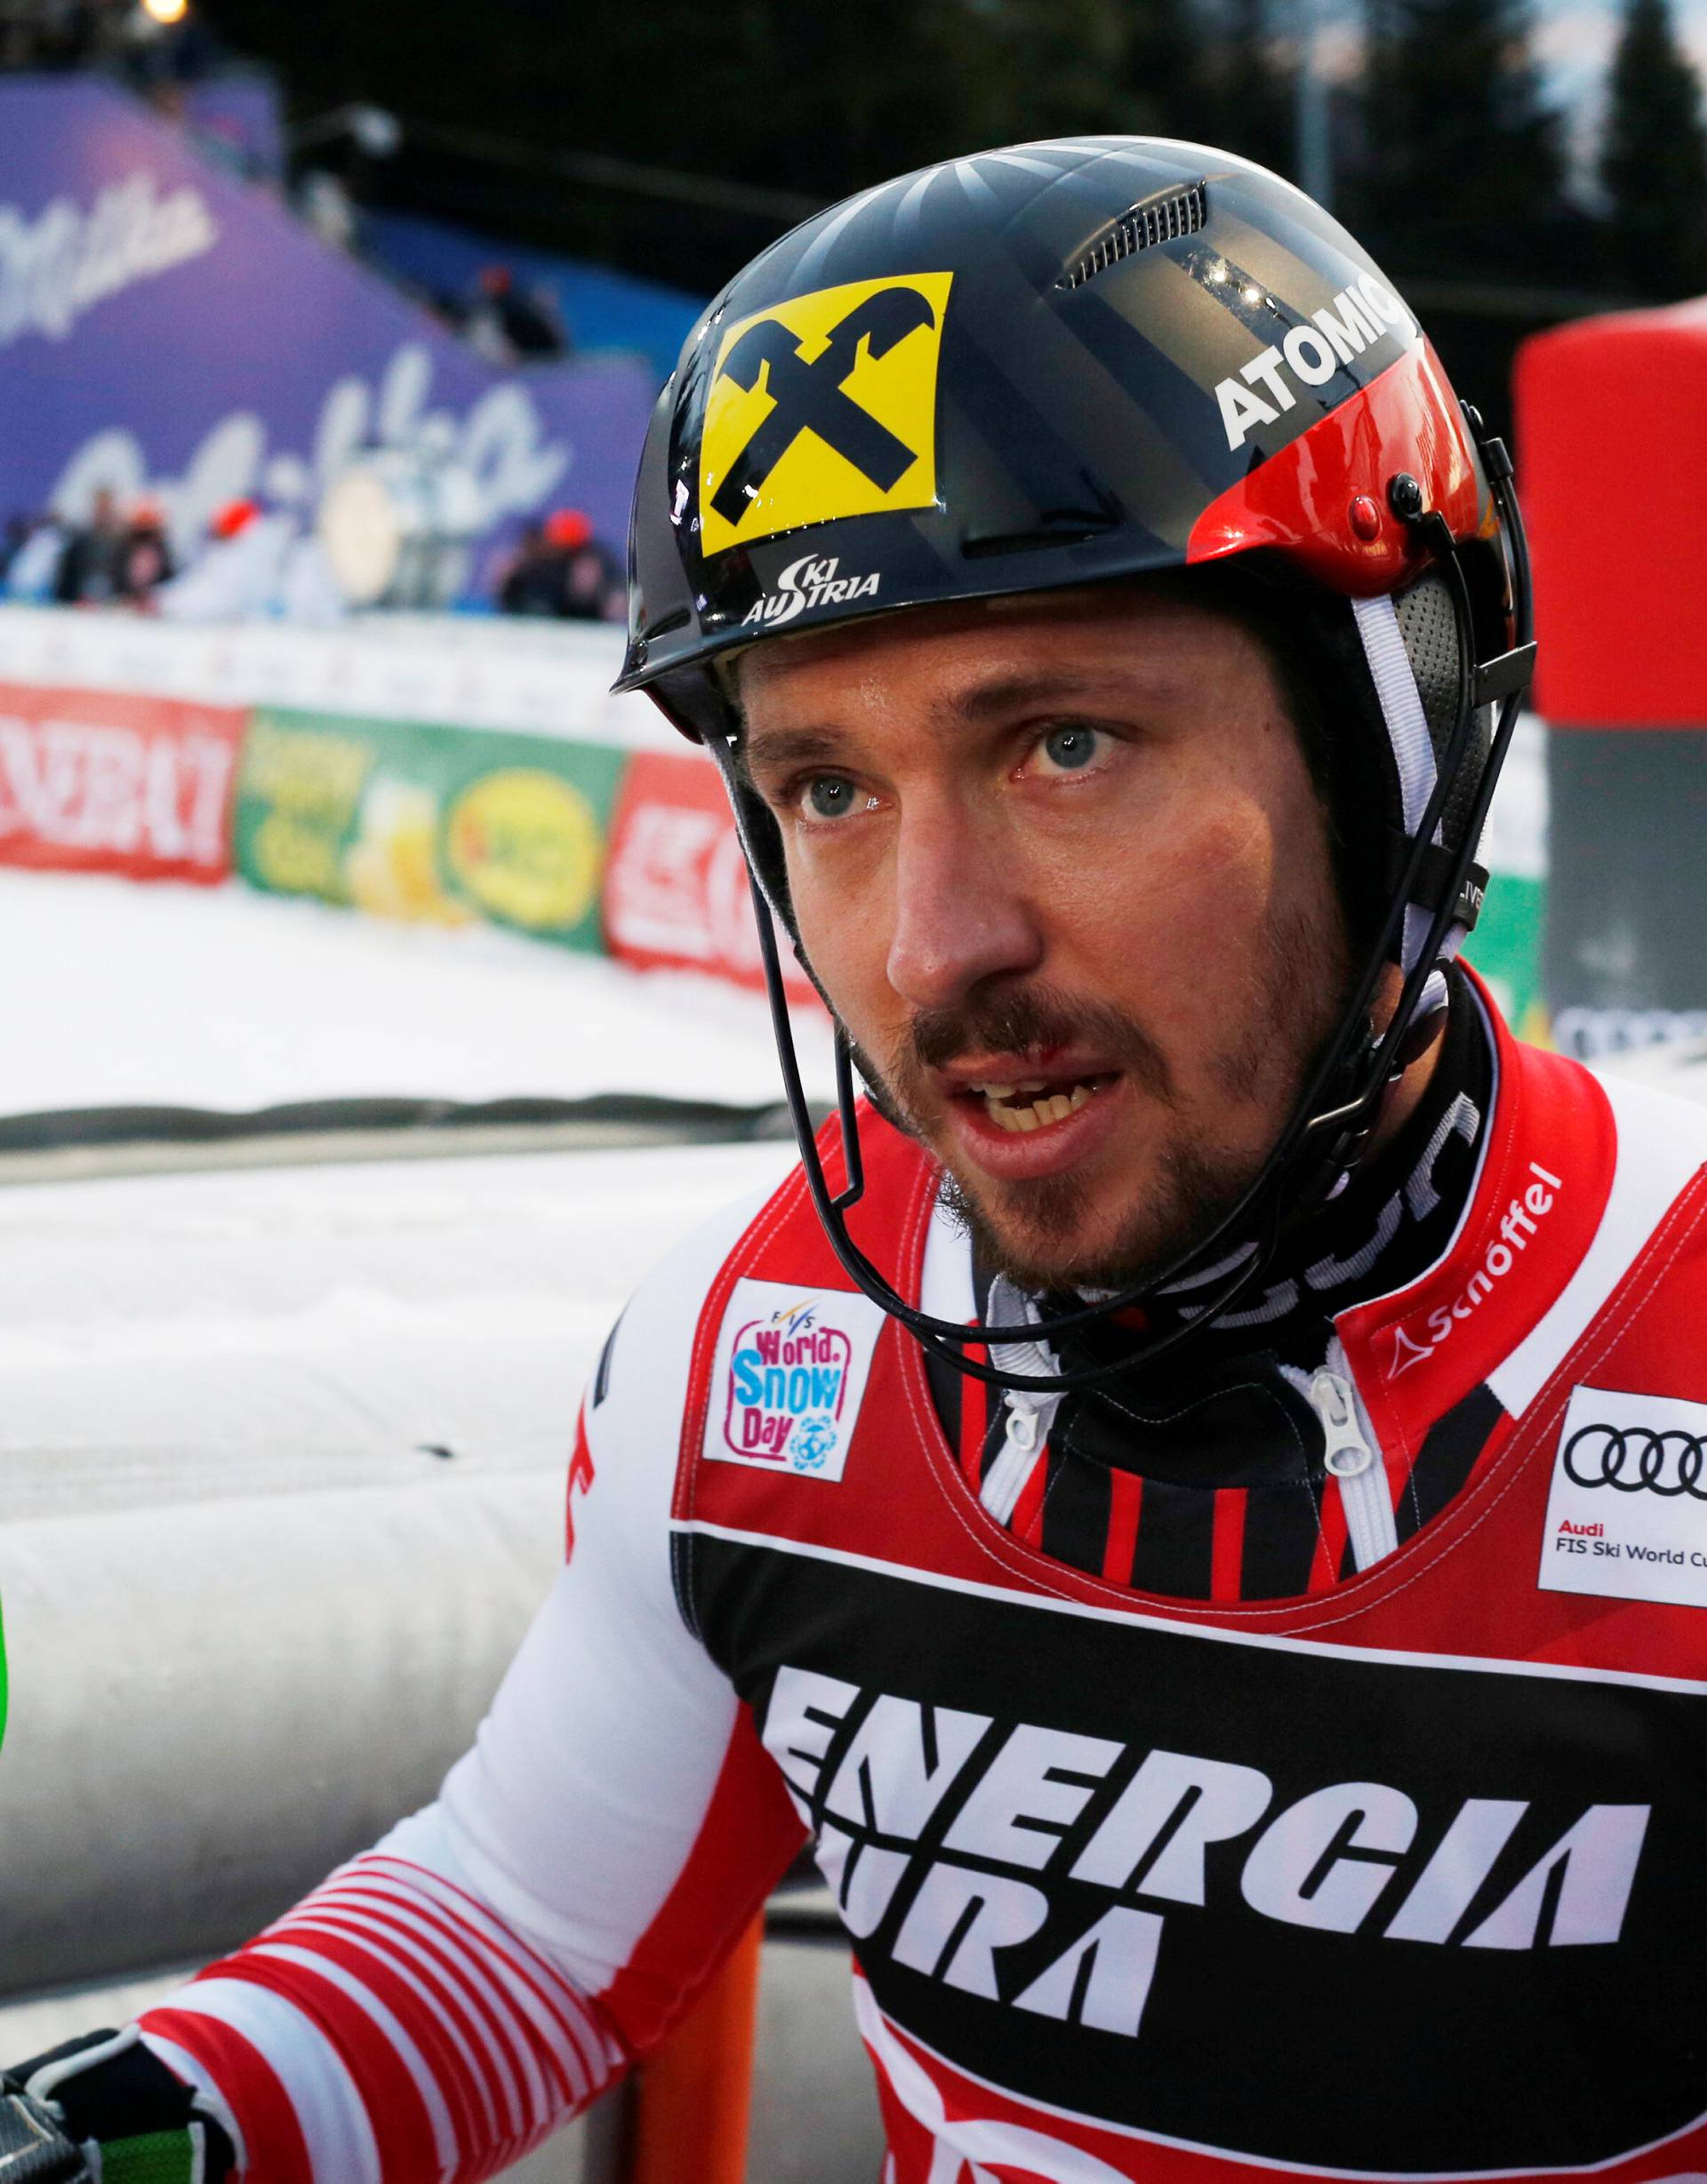 Alpine Skiing - Alpine Skiing World Cup - Men's Slalom